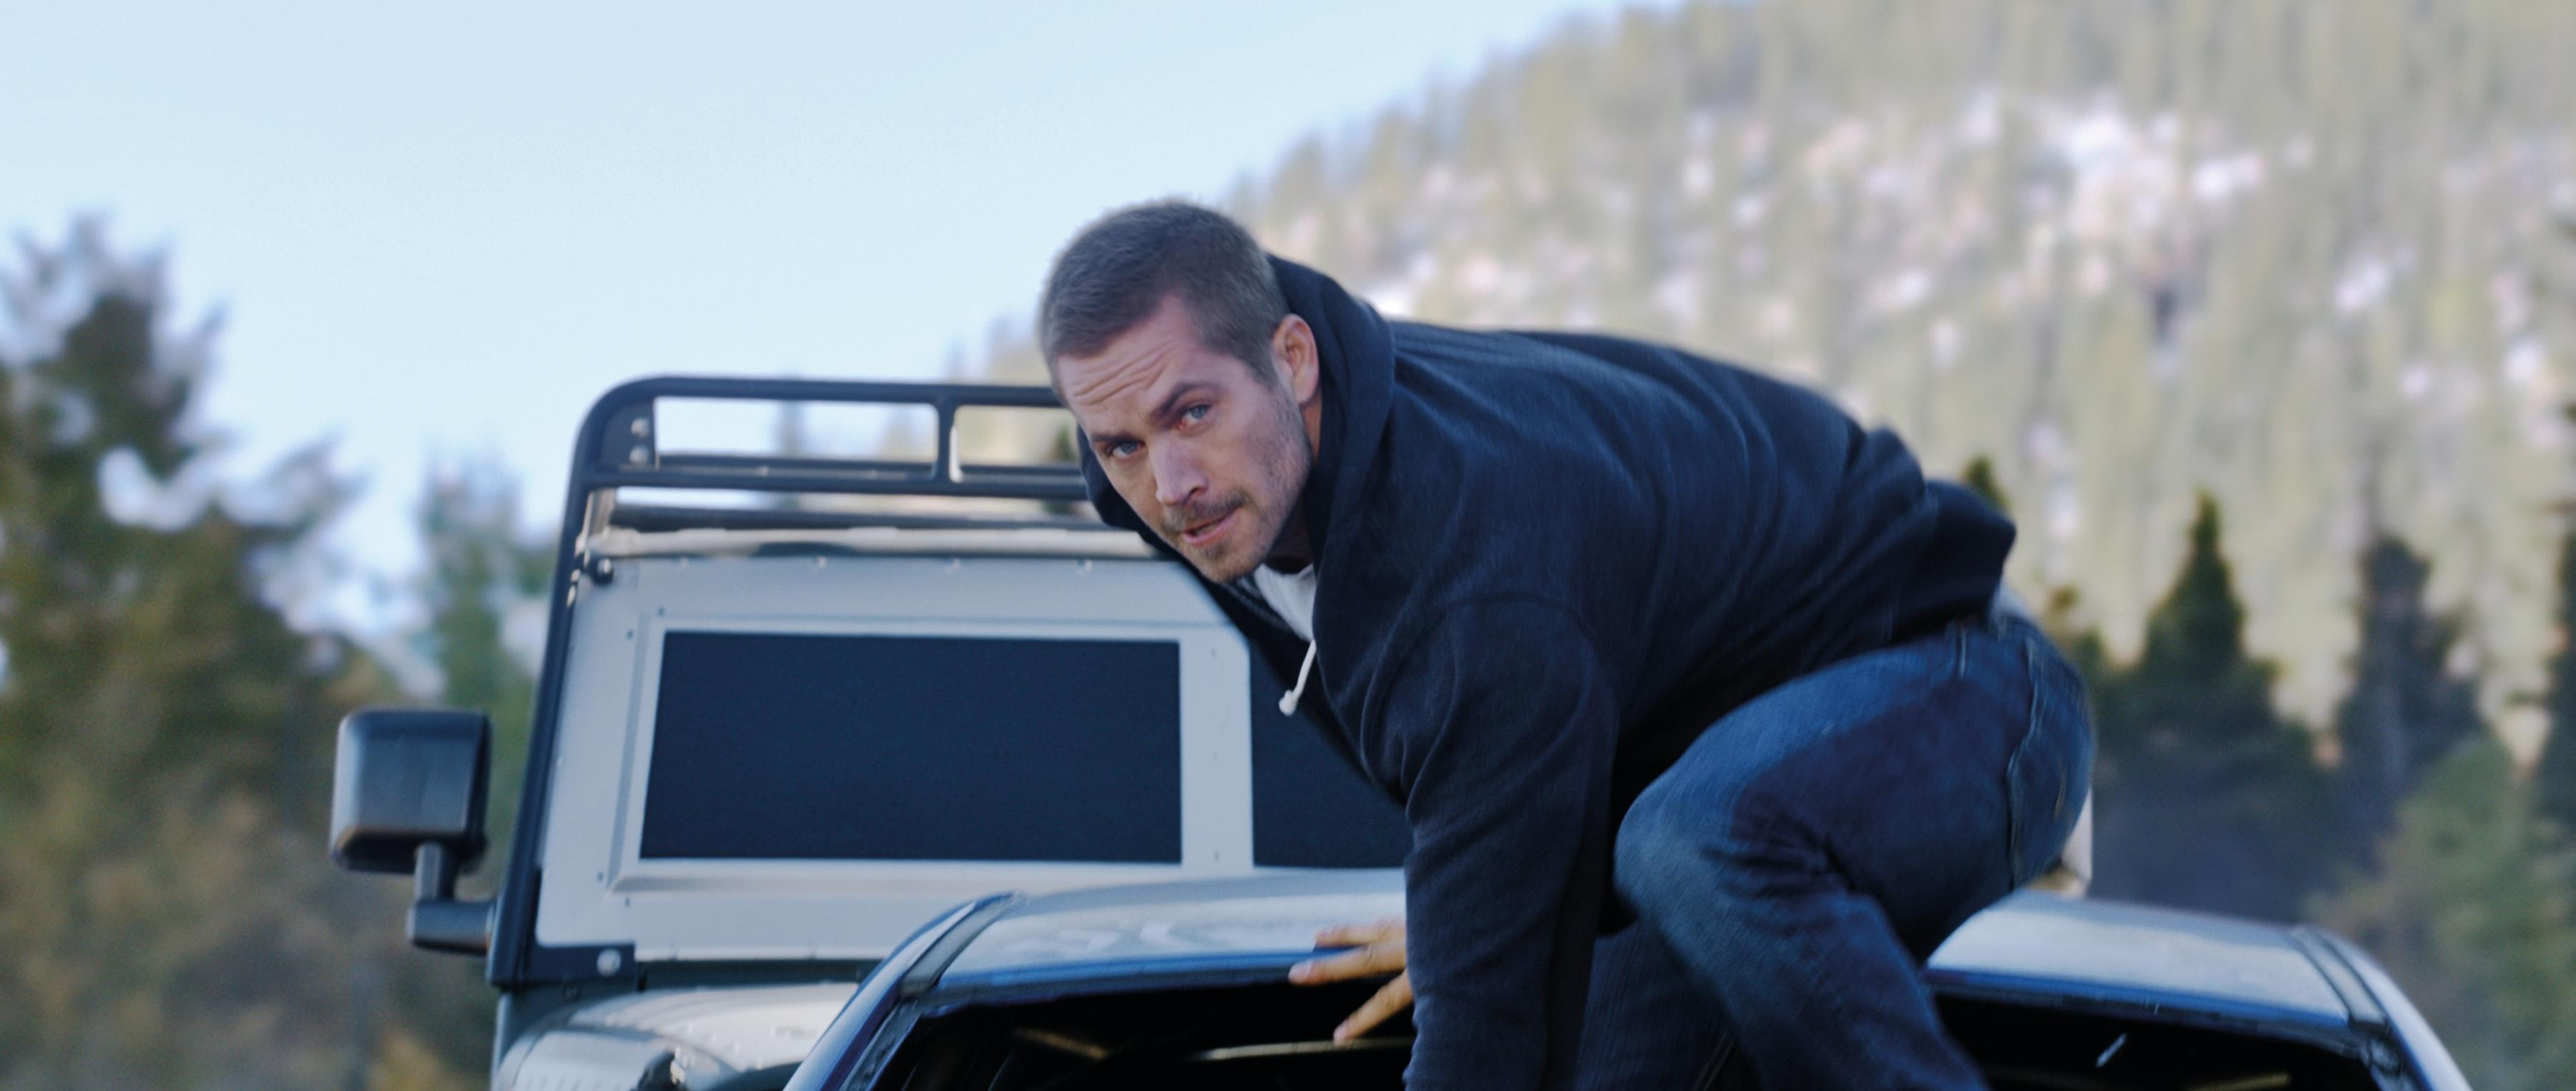 'Furious 7' outruns box office rivals for 4th straight week